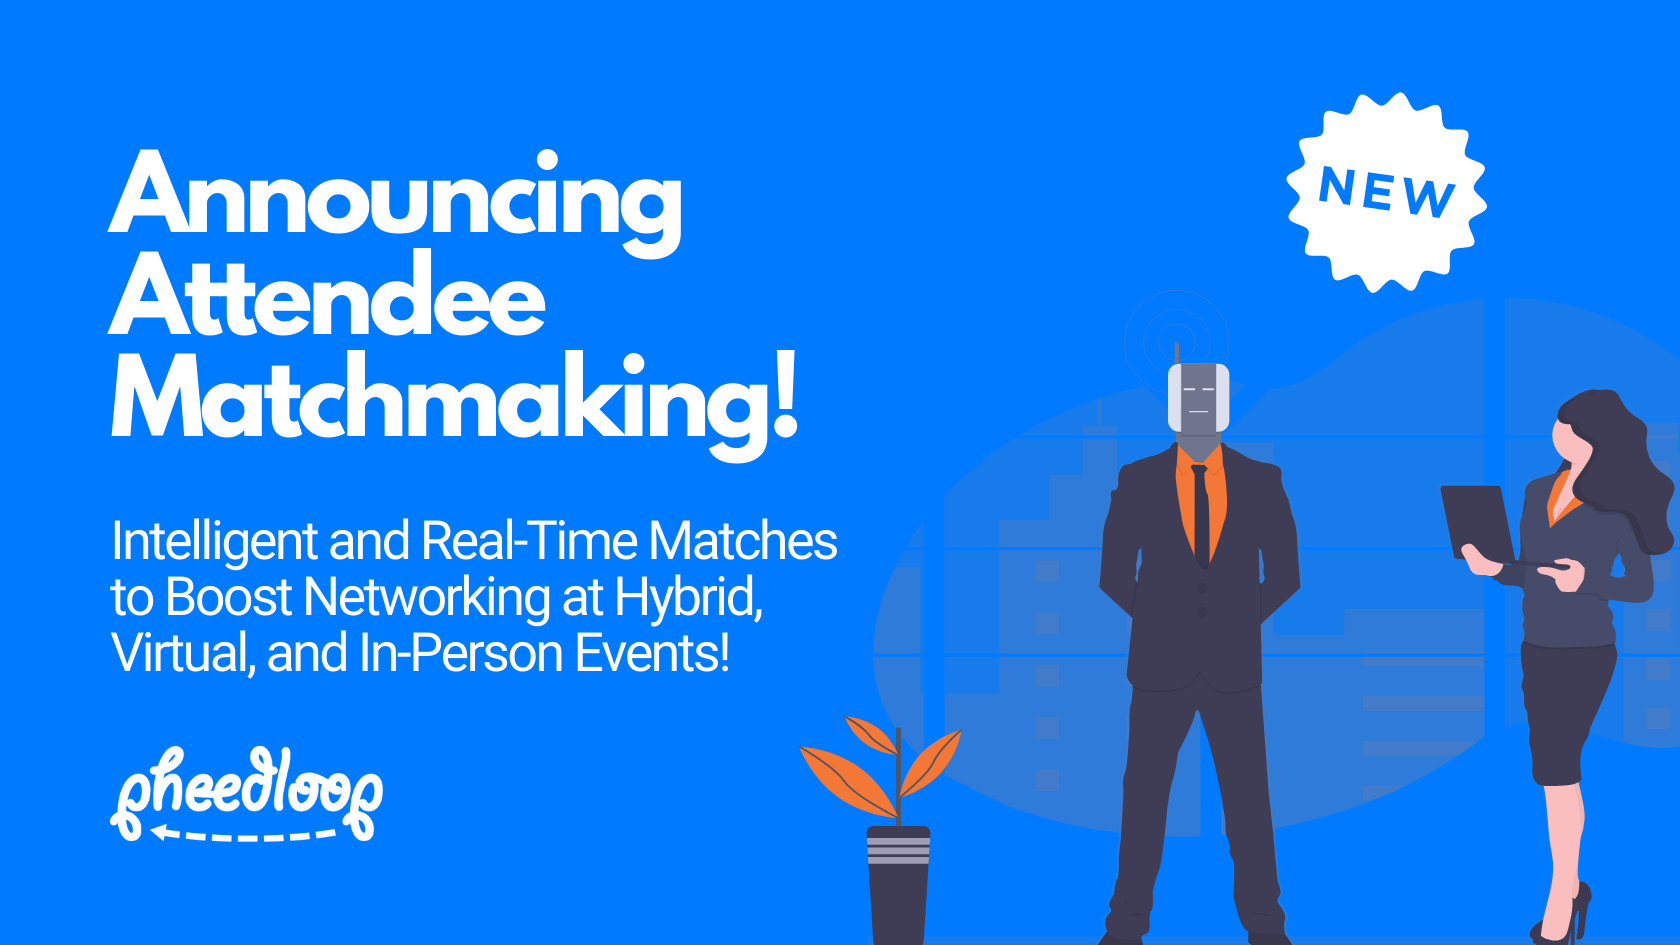 Attendee Matchmaking! Intelligent and Real-Time Matches to Boost Networking at Hybrid, Virtual, and In-Person Events!